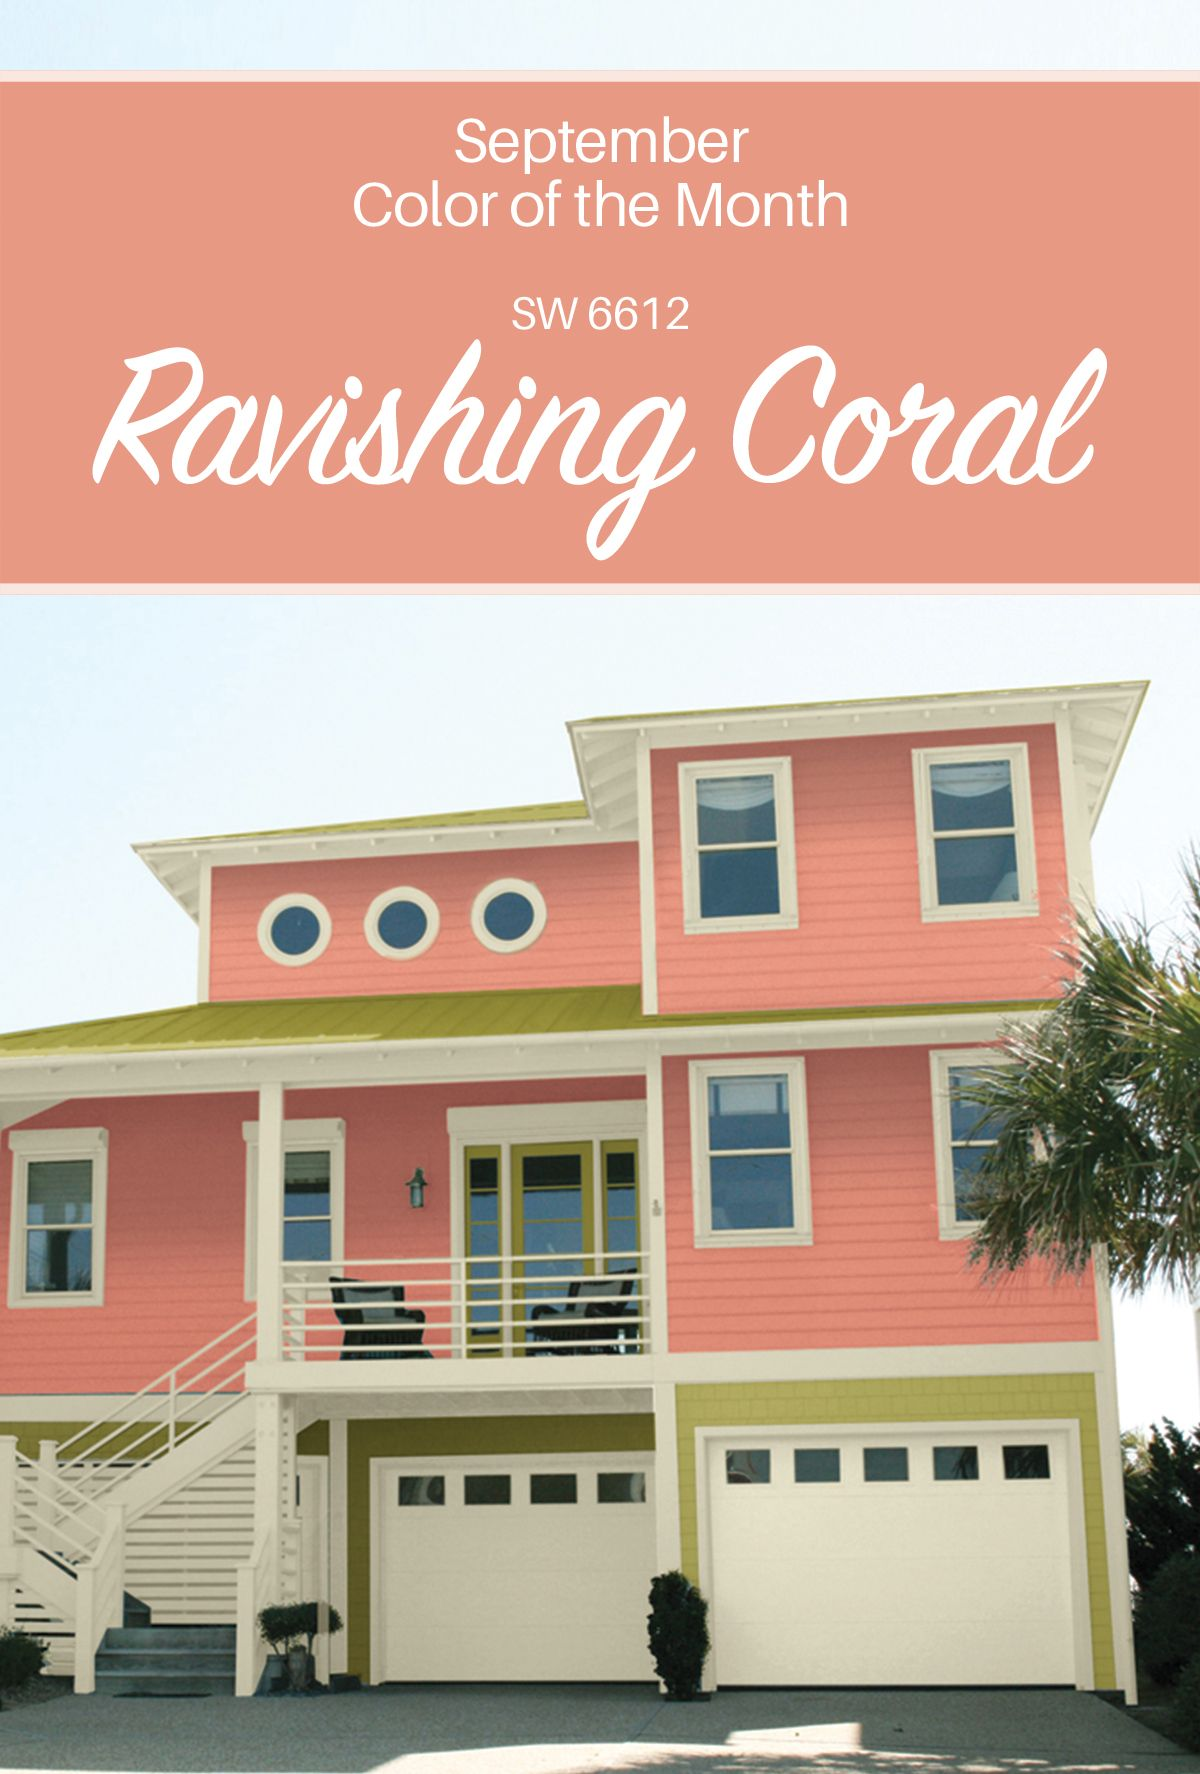 ravishing garden homes austin tx. Sherwin Williams  September Color of the Month Ravishing Coral SW 6612